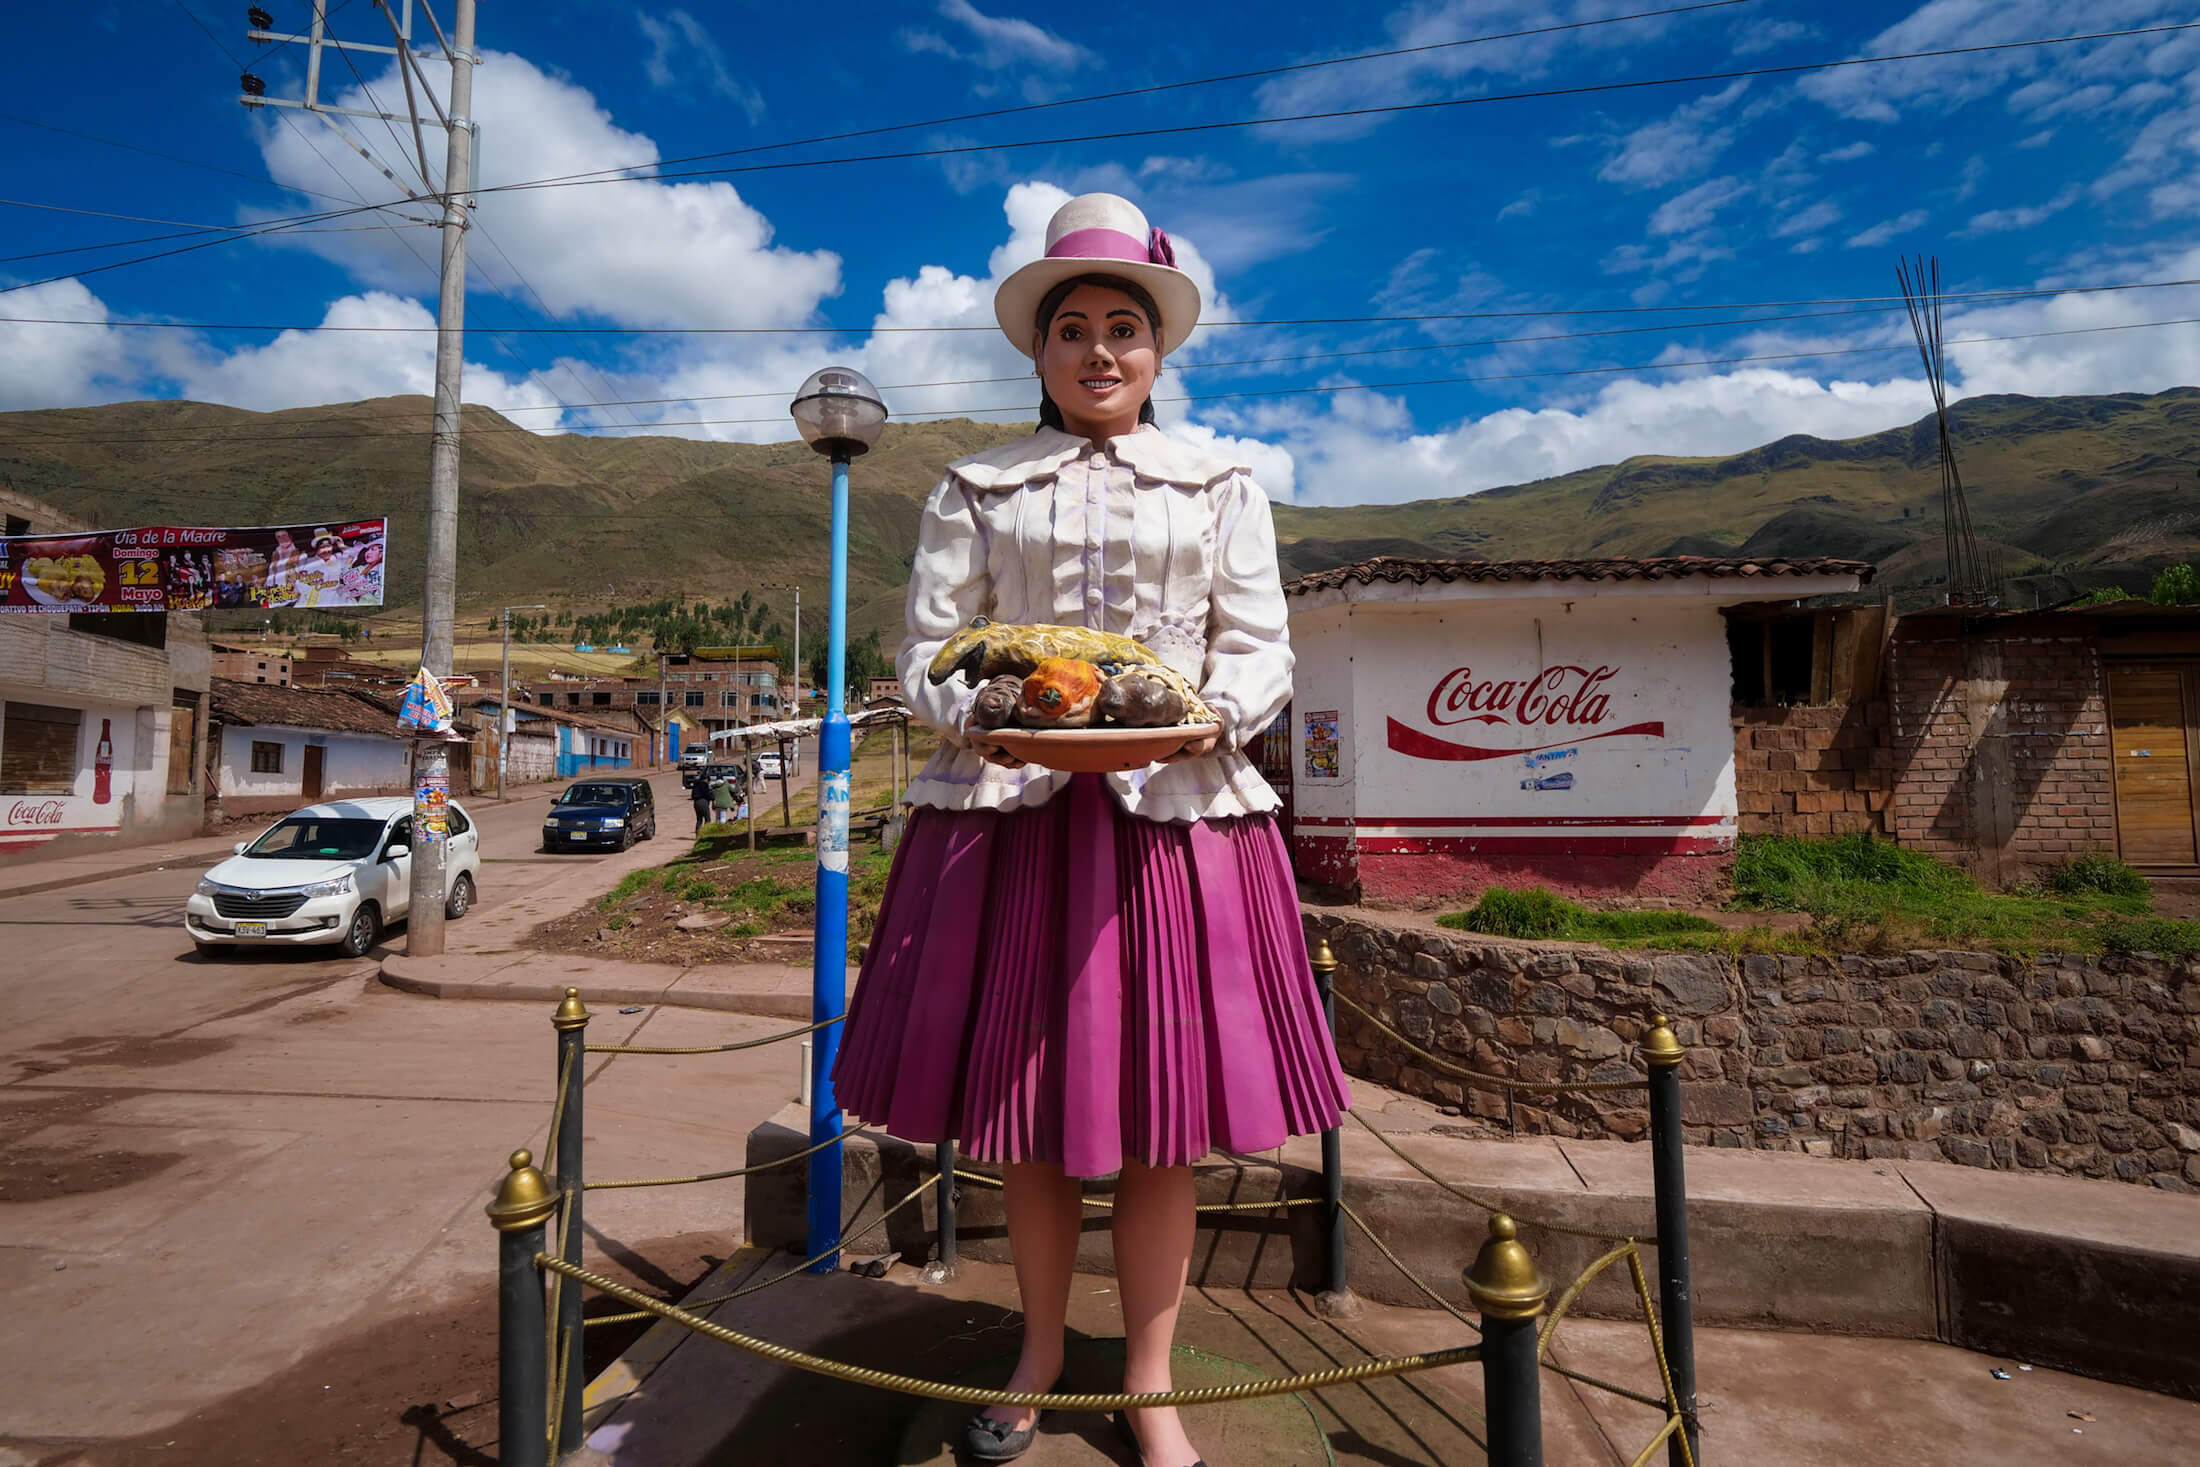 Tipón has this statue to welcome you, in hopes that you'll enjoy the Cuy al Horno its so famous for...